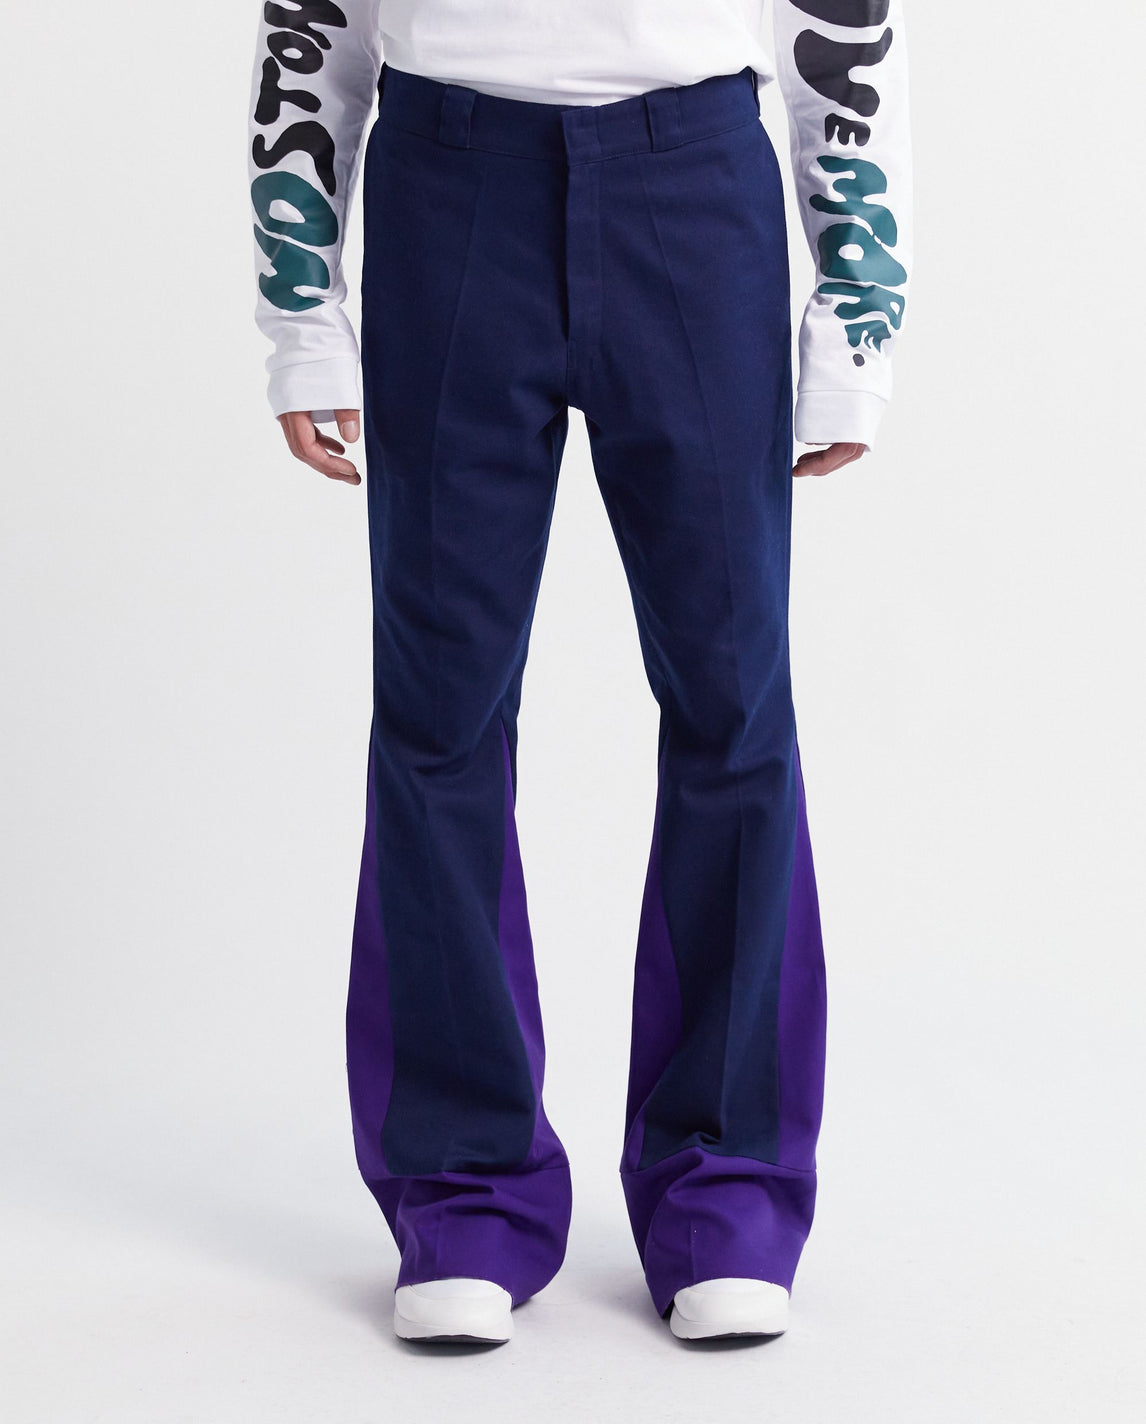 Flared Pants With Contrasting Inserts - Navy/Purple MENS RAF SIMONS